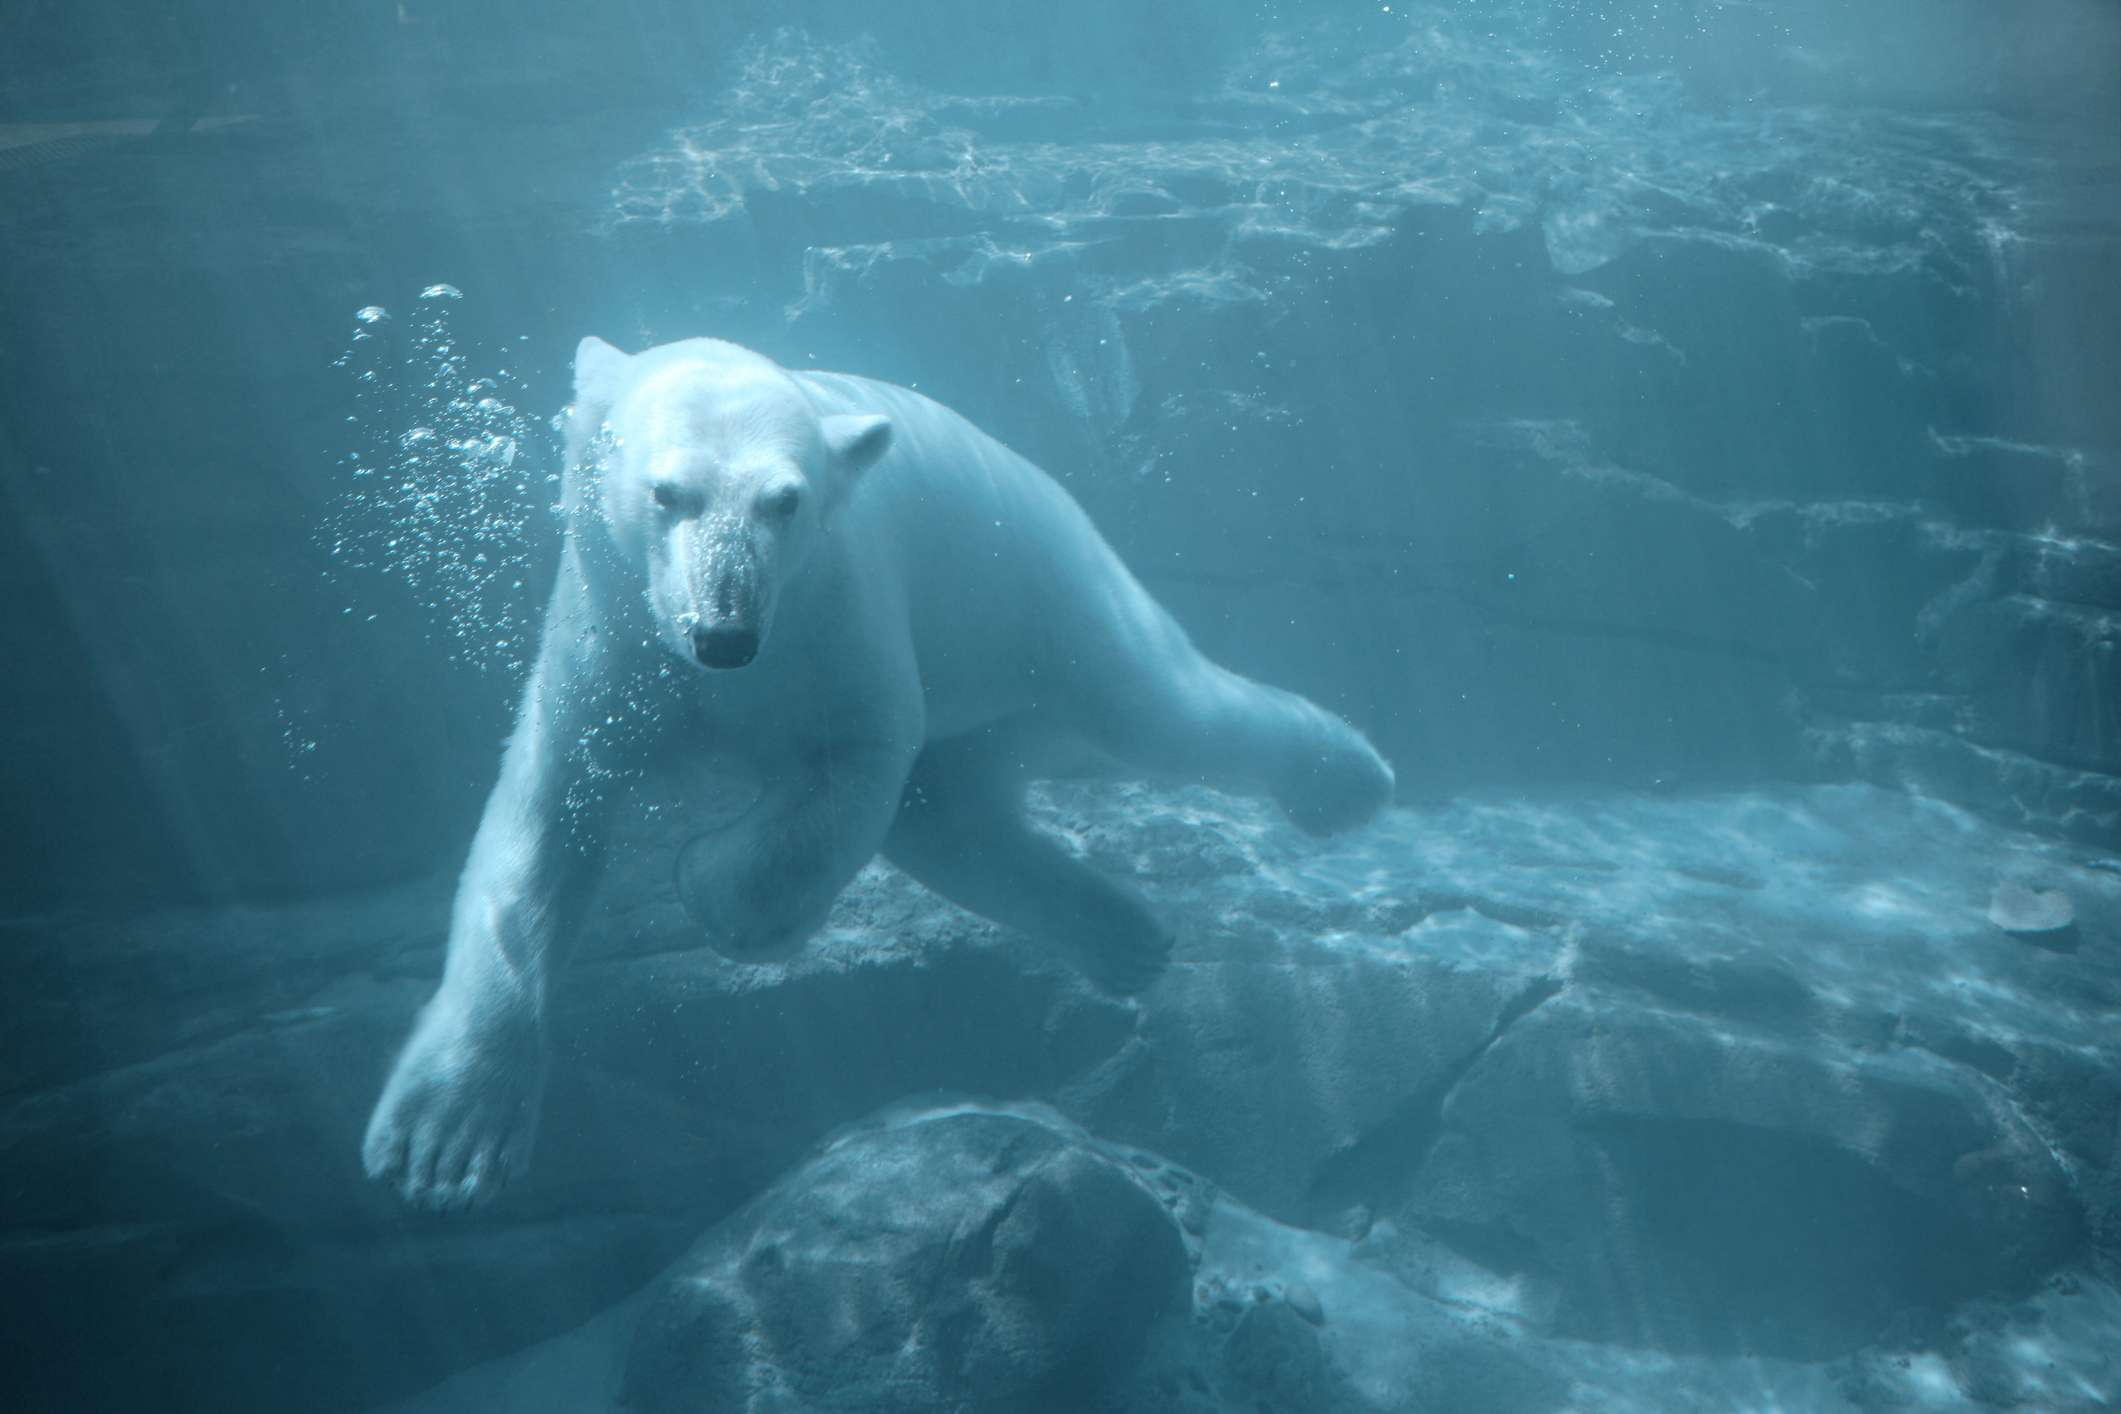 large white polar bear swims underwater among rocks and cliffs